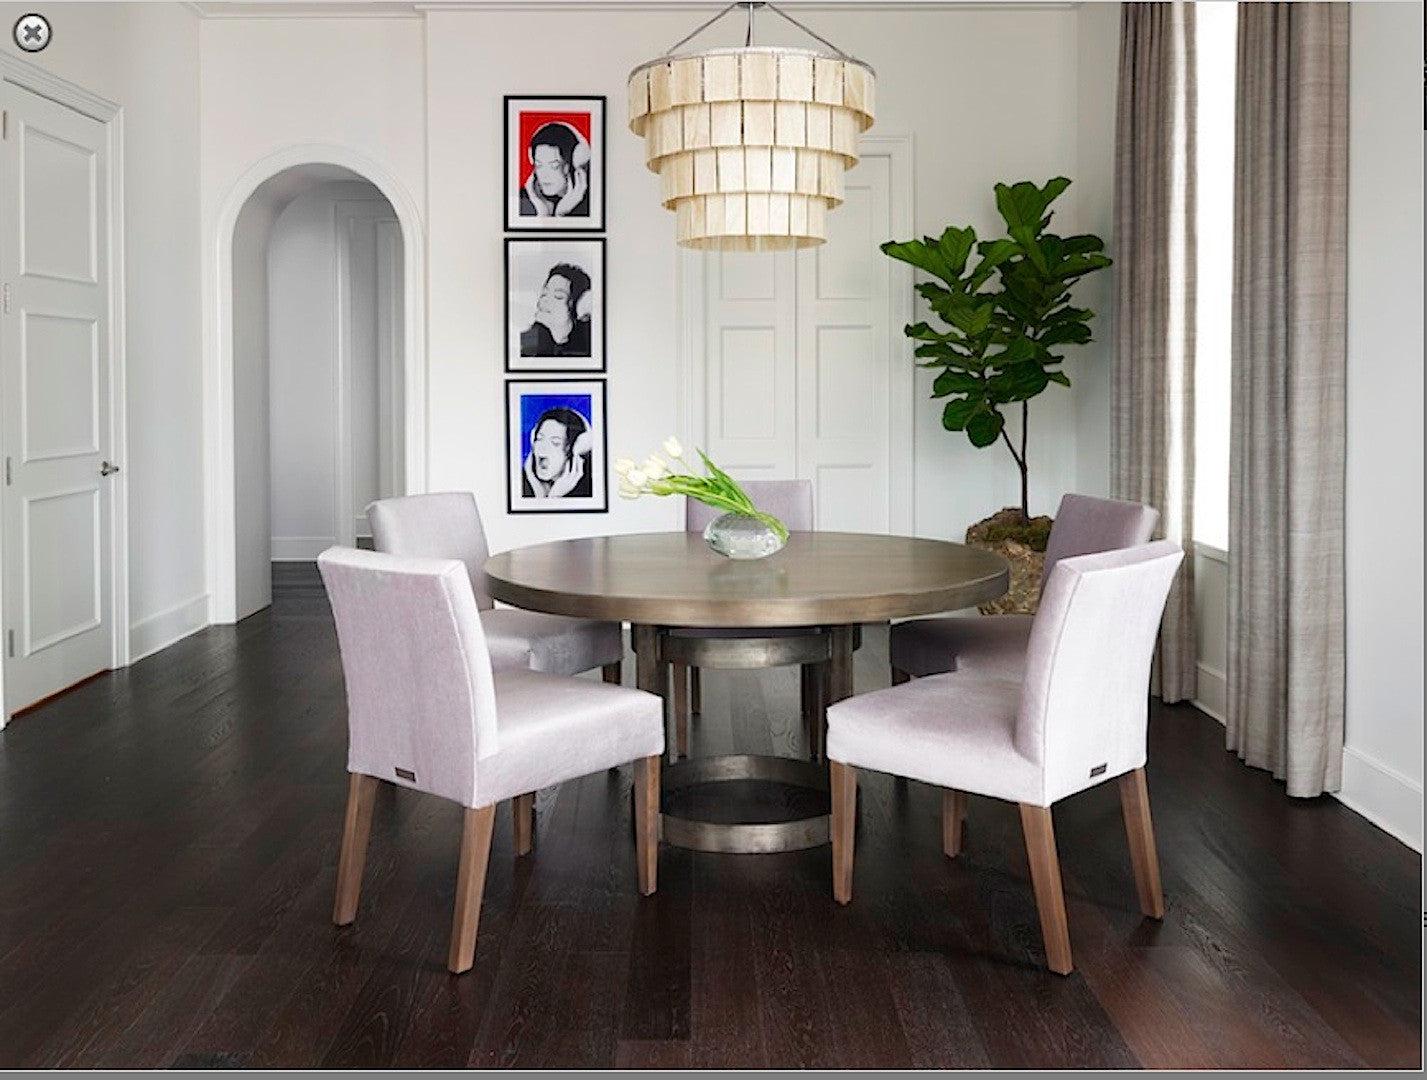 Picture of: Industrial Modern Round Dining Table With Upholstered Chairs Mortise Tenon